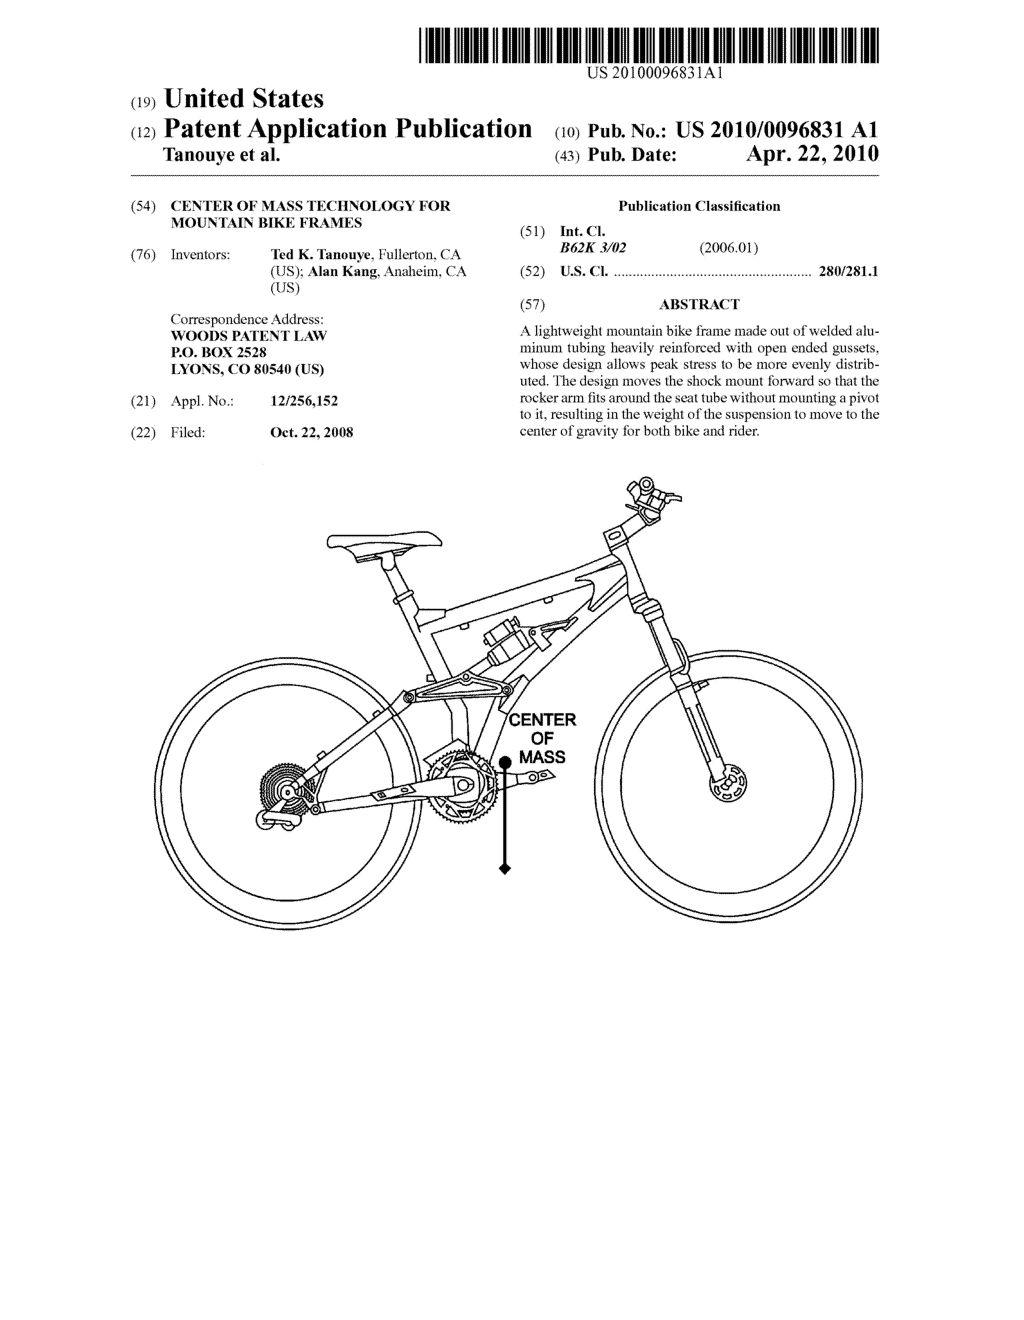 Mountain Bicycle Diagram Trusted Wiring Component Terminology Explained Veloreviews Center Of Mass Technology For Bike Frames Process